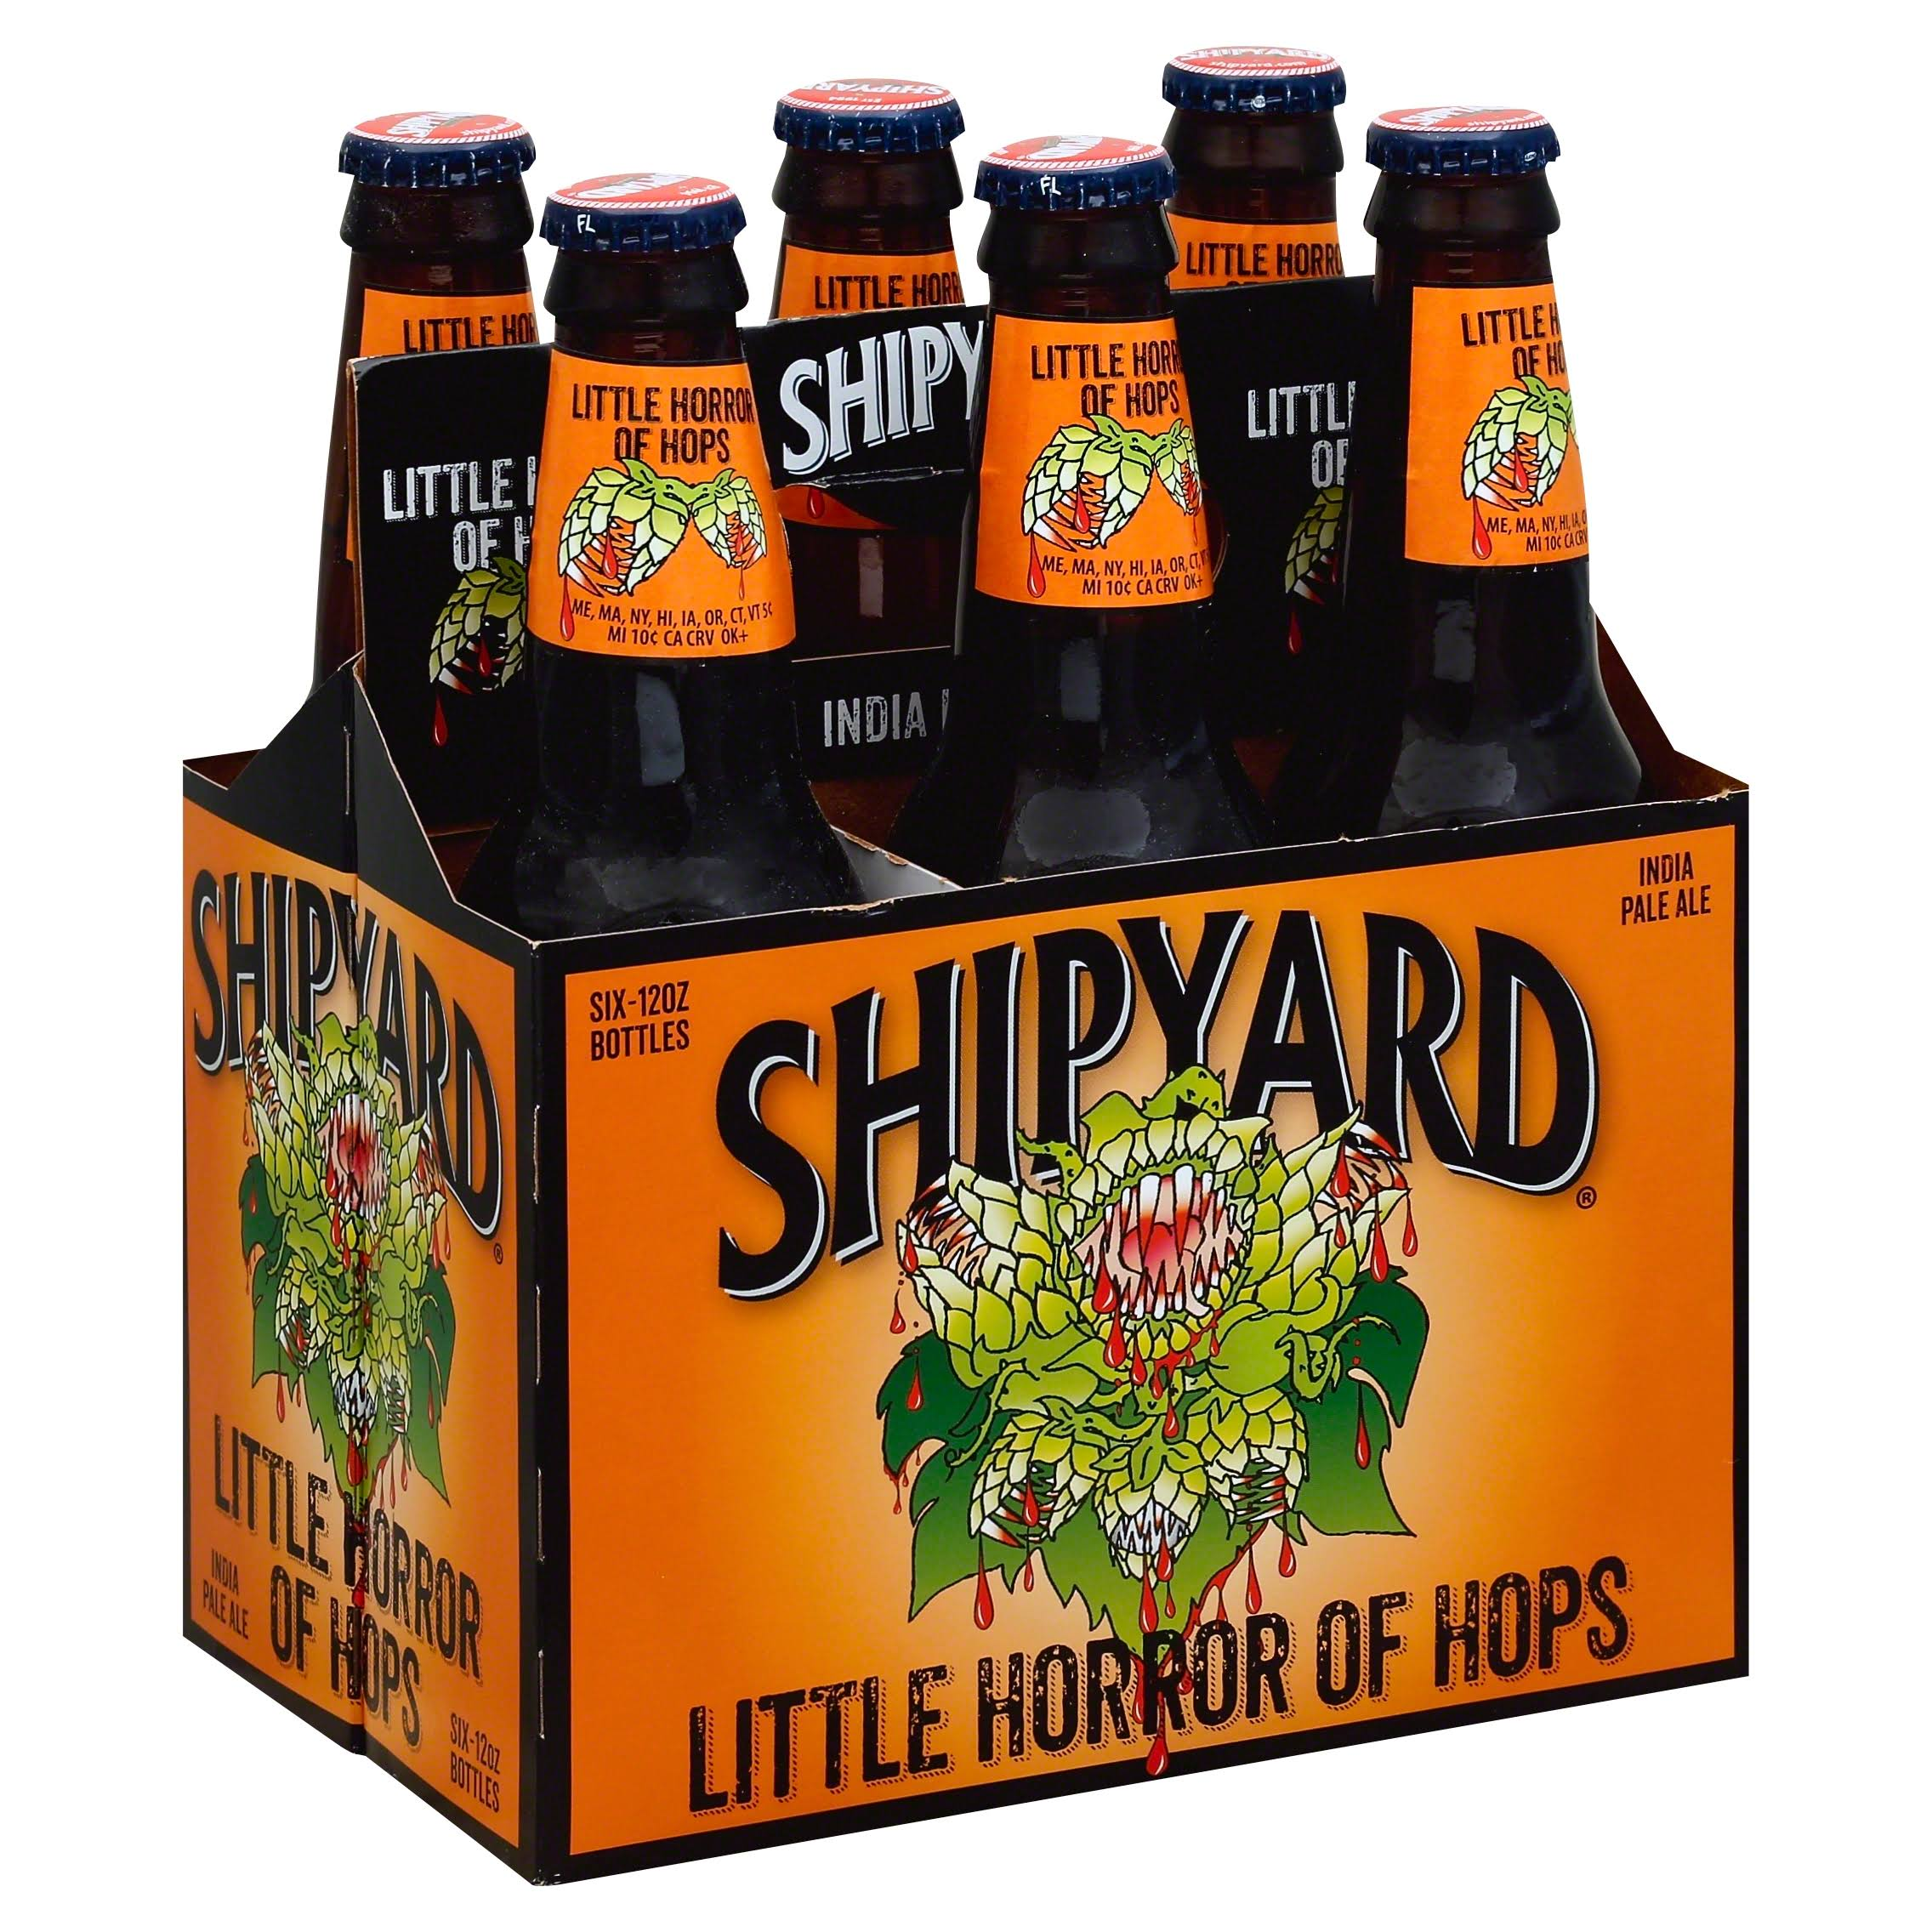 Shipyard Little Horror Of Hops India Pale Ale - 12oz, 6 Bottles